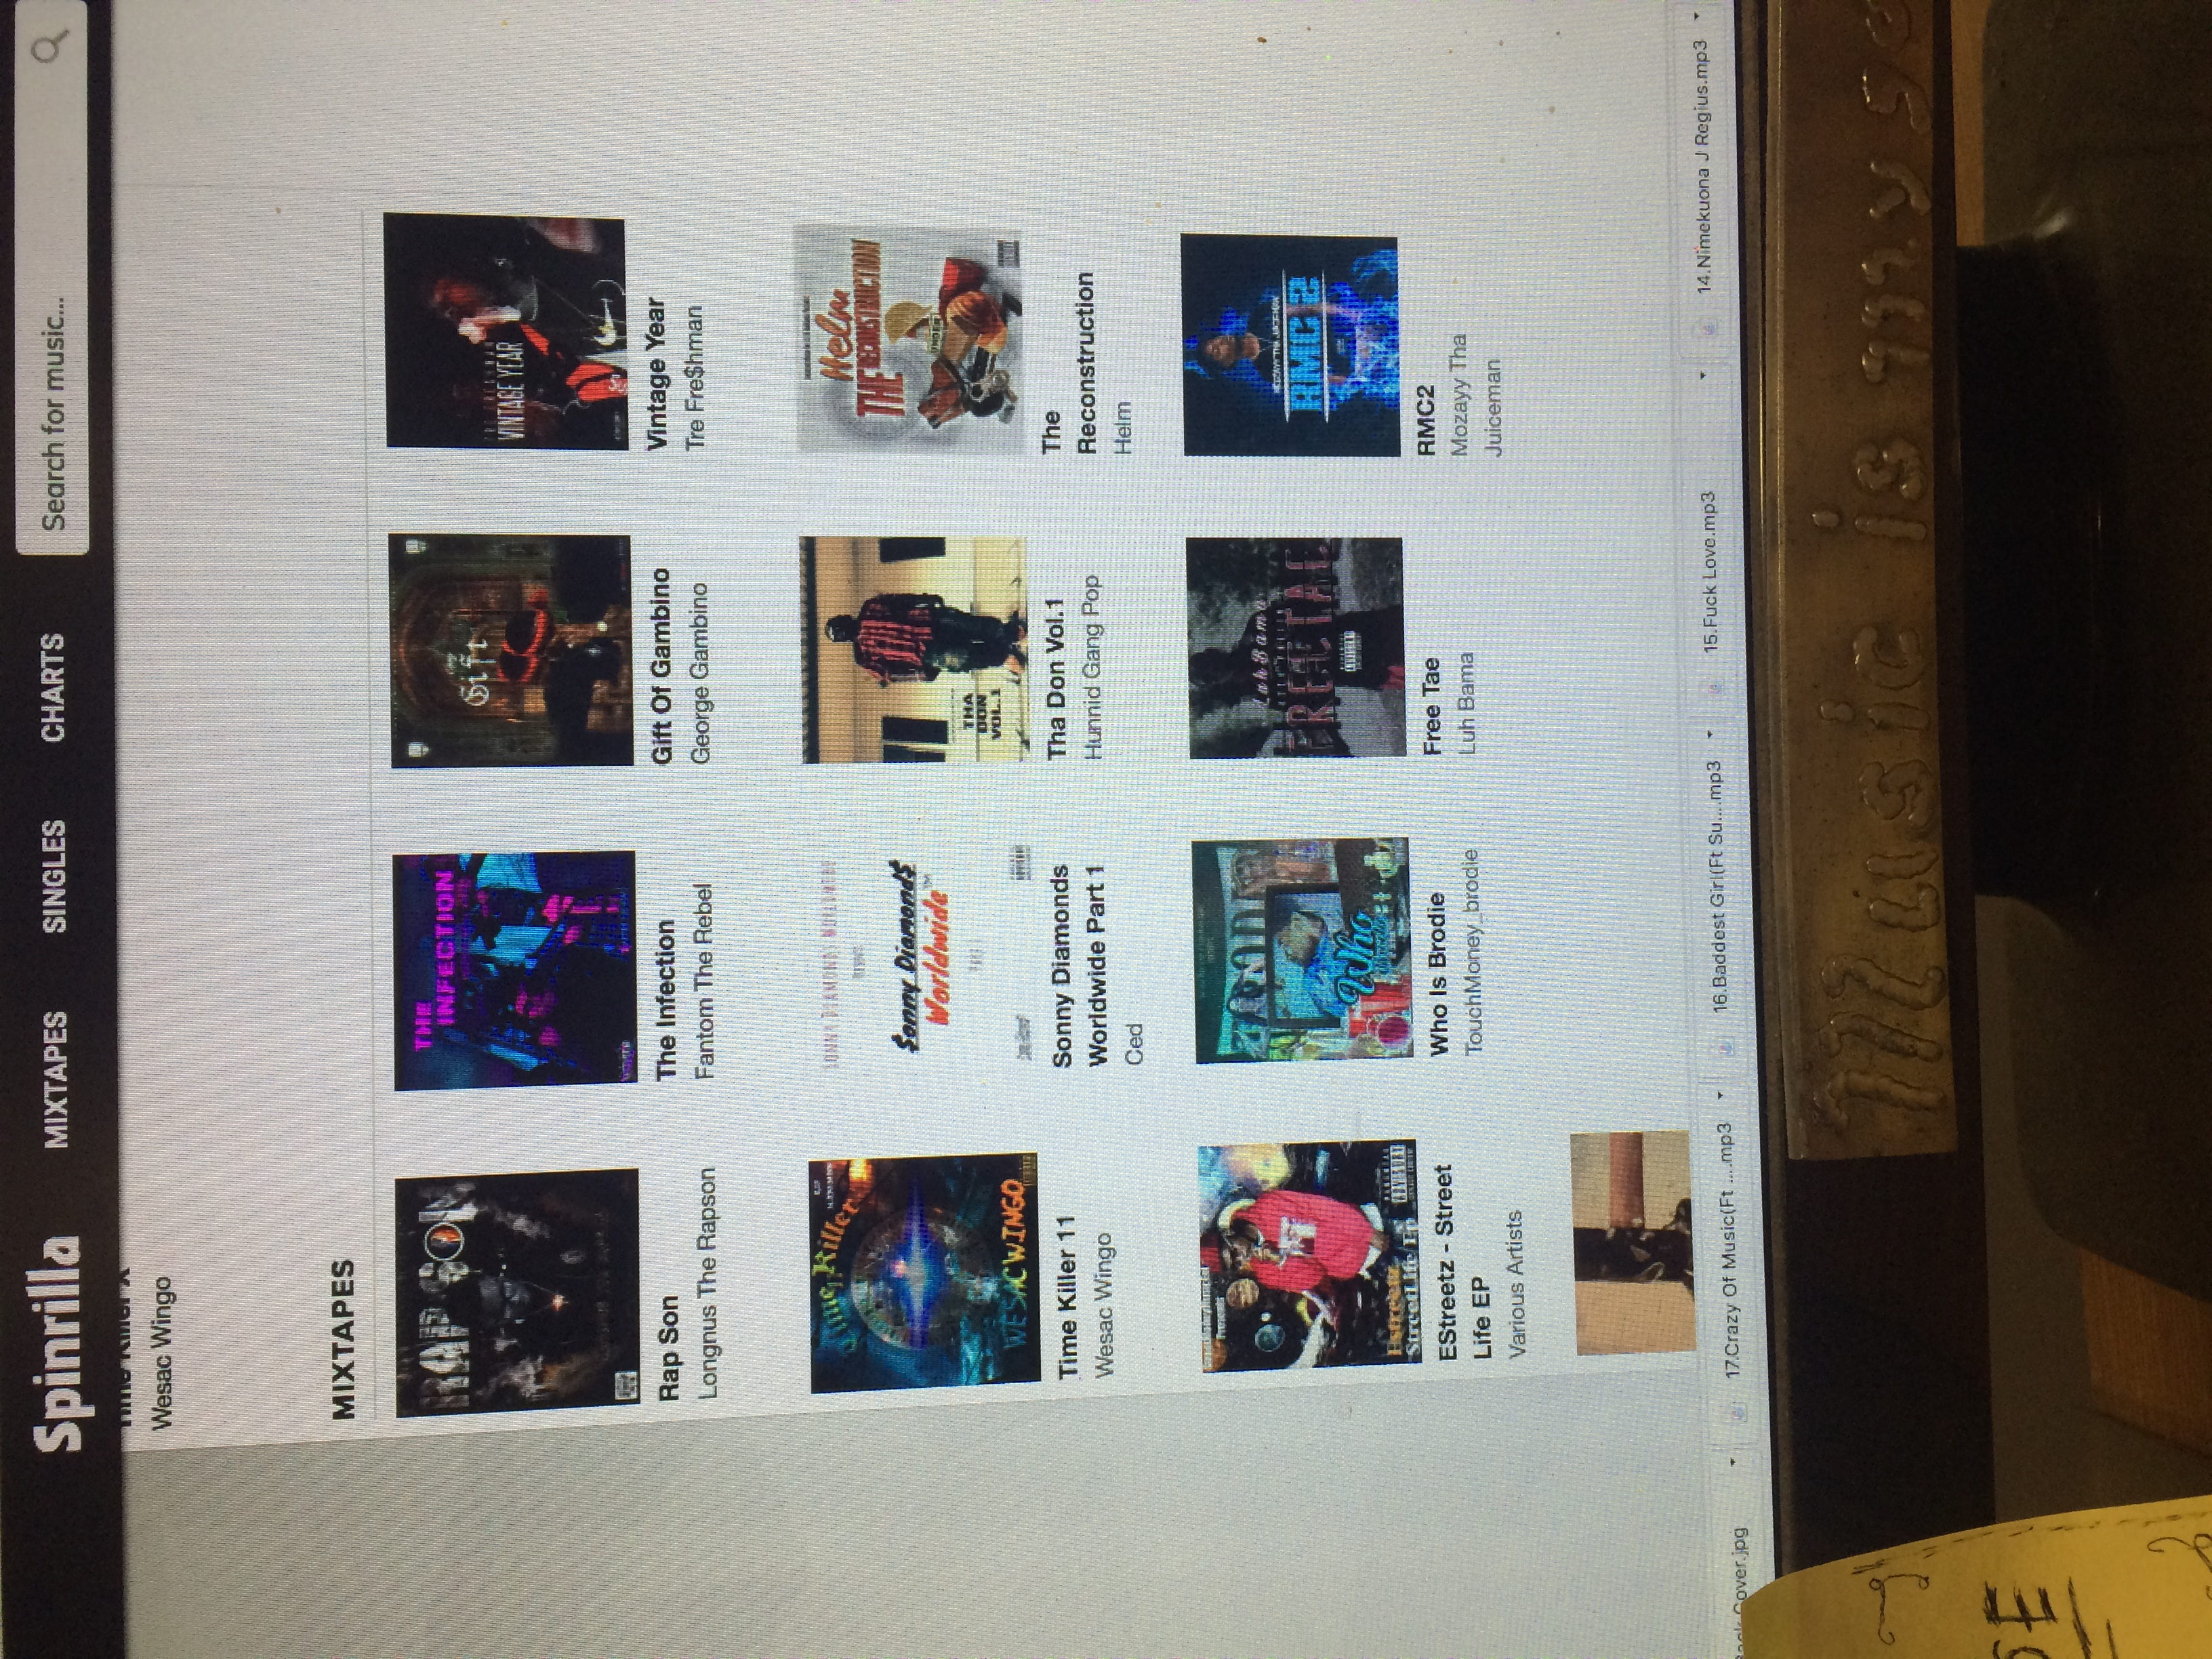 Spinrilla And Mymixtapez Upload With Promo